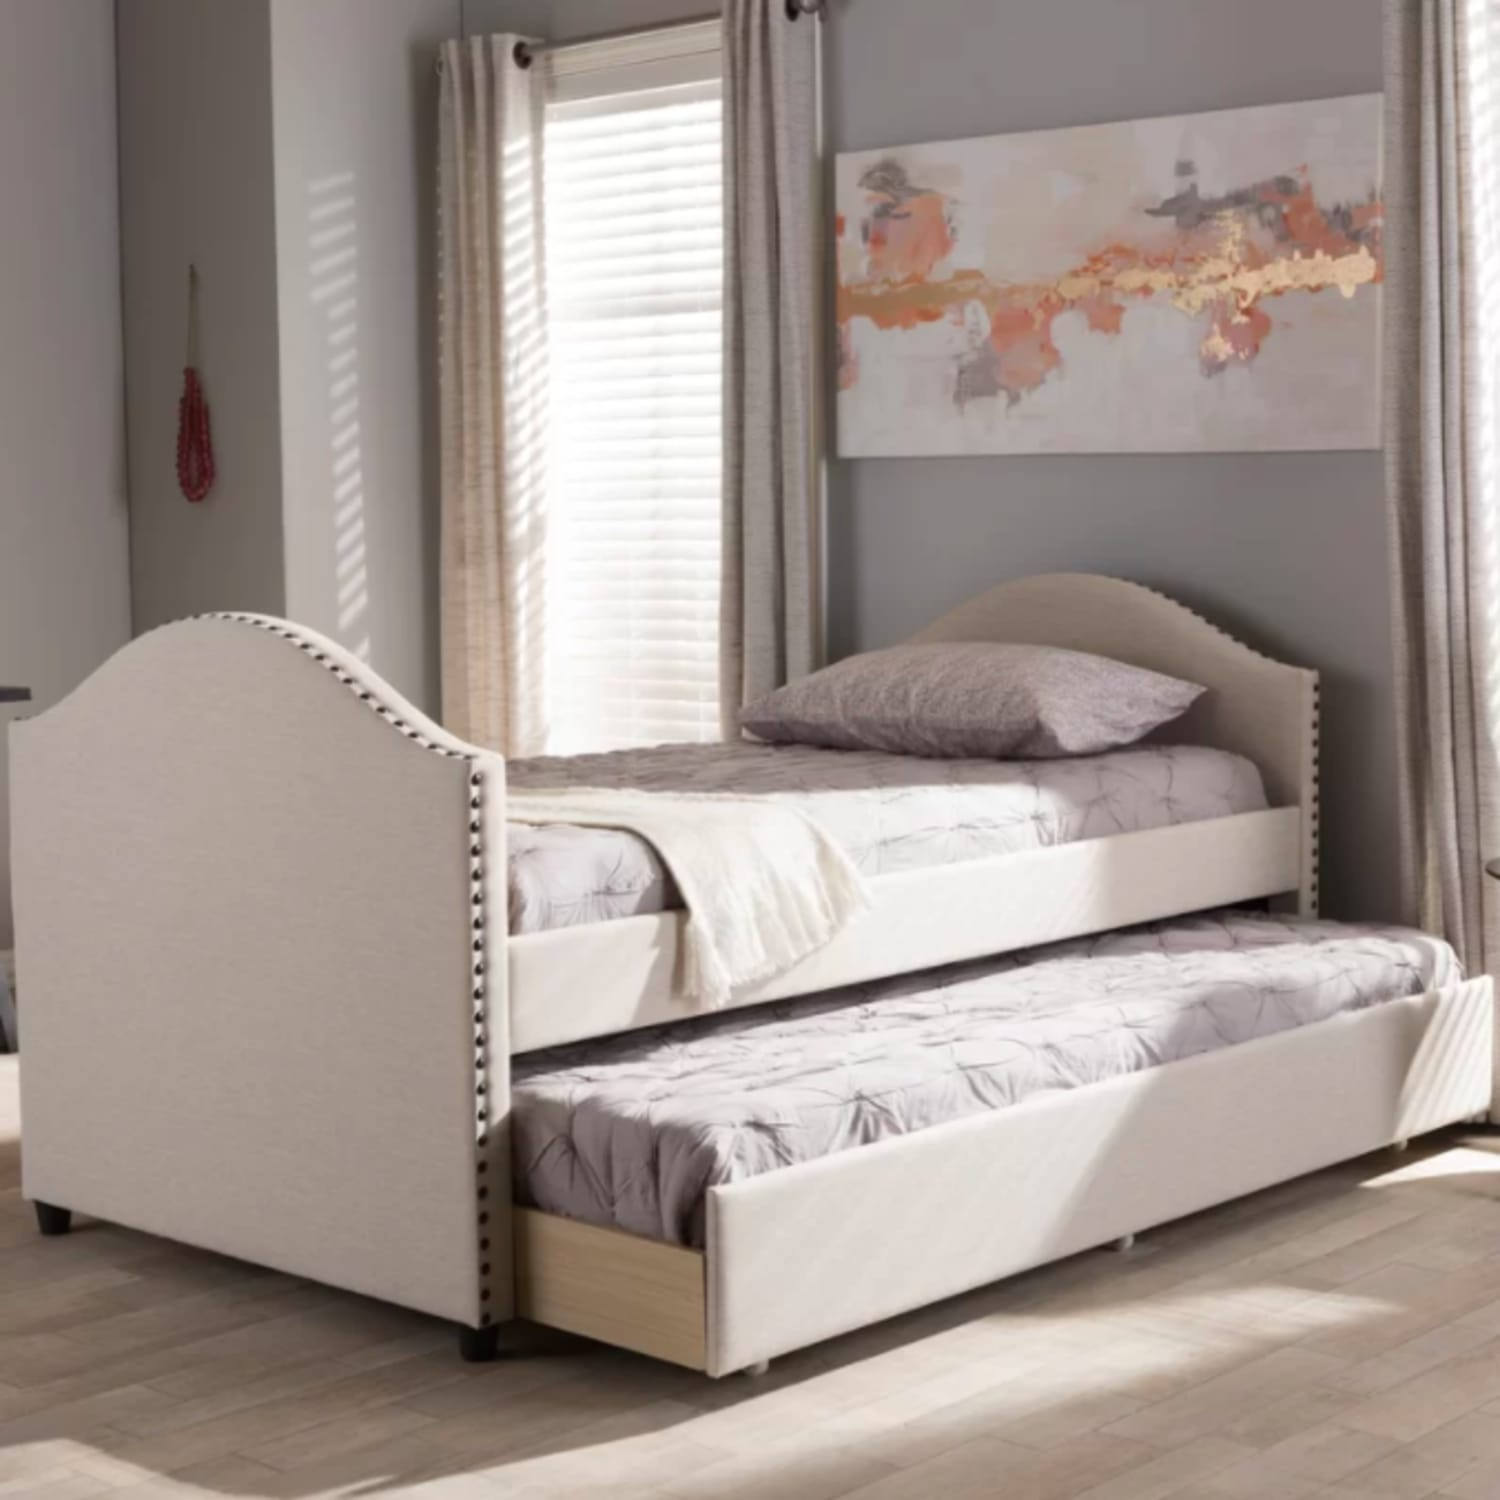 Our Favorite Trundle Beds | Apartment Therapy